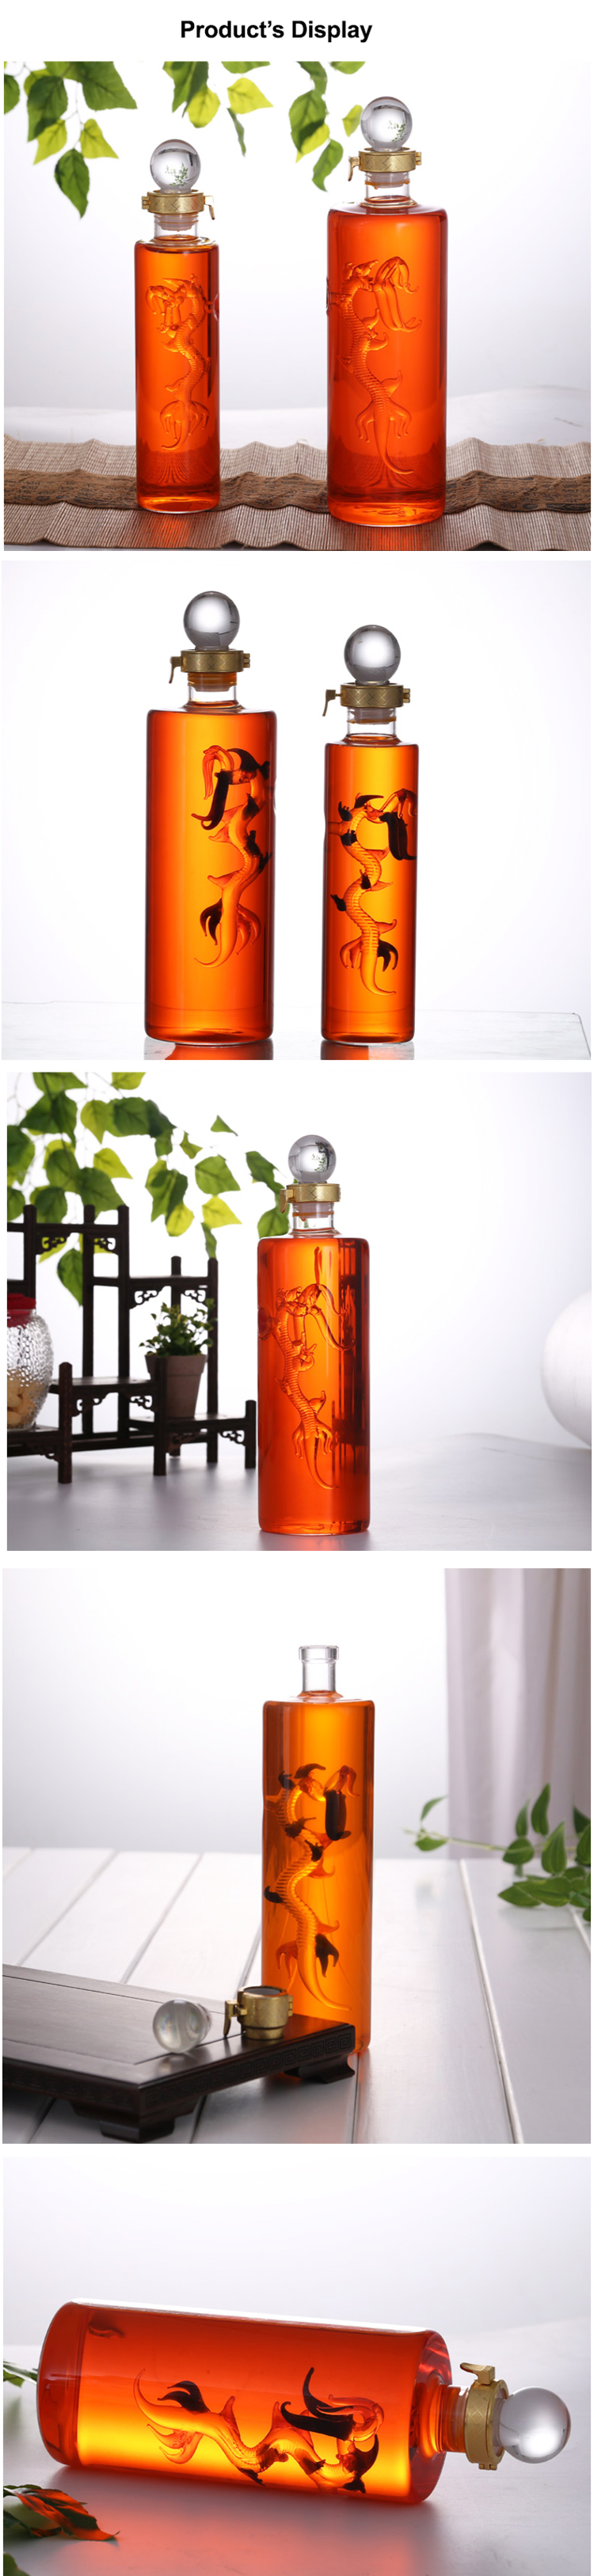 500ml 1000ml 1500ml 2500ml Heat Resistant Borosilicate Dragon Inside Clear Glass Tonic Ginseng Wine Bottle Whisky Decanter